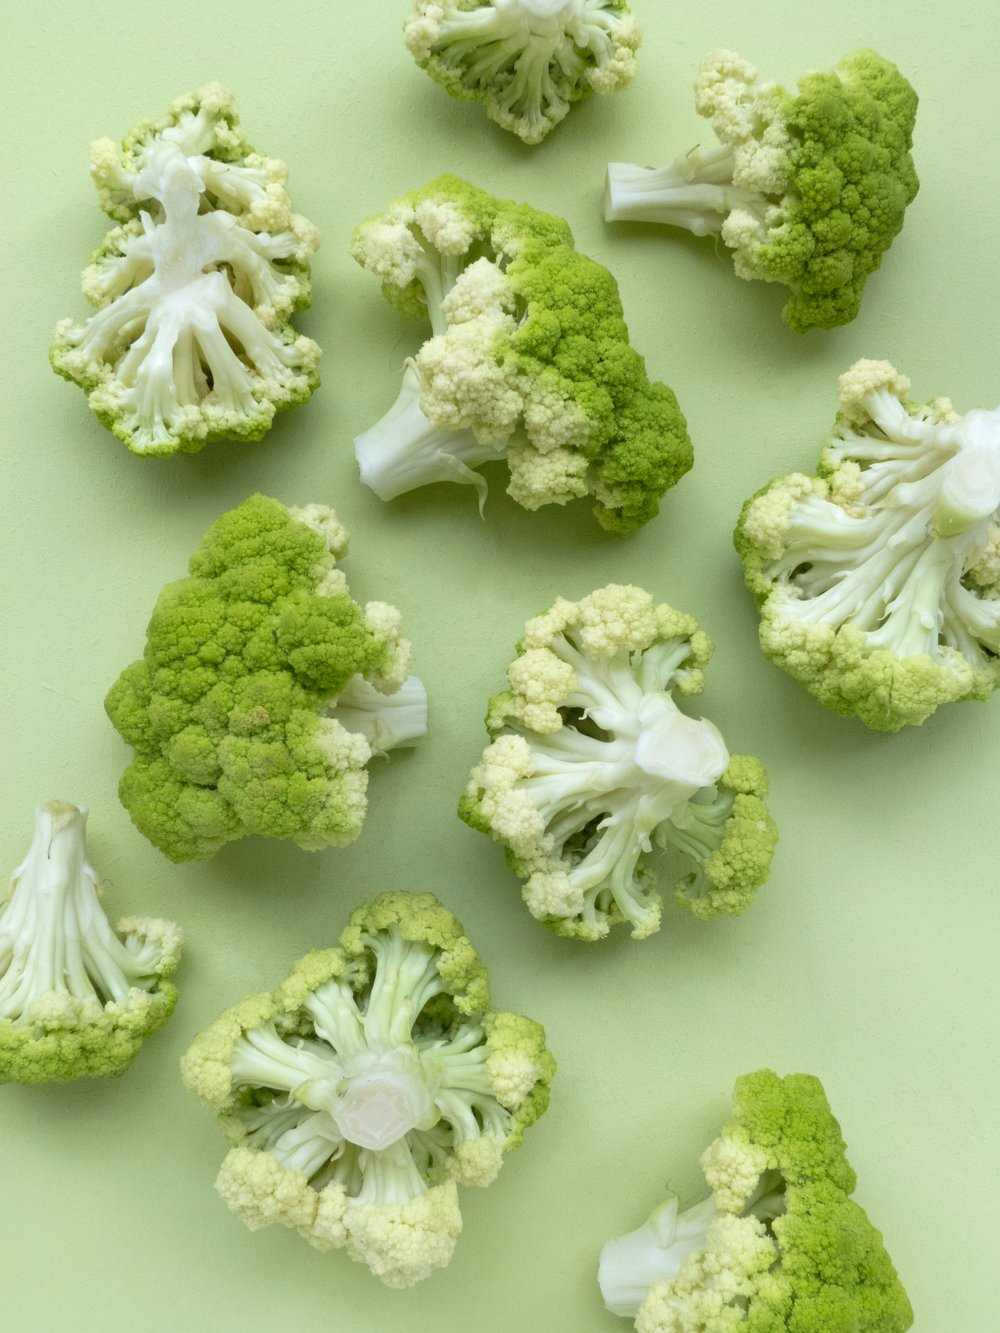 Eating cruciferous vegetables as part of a healthy lifestyle!    Image: Foodism360 on UnSplash